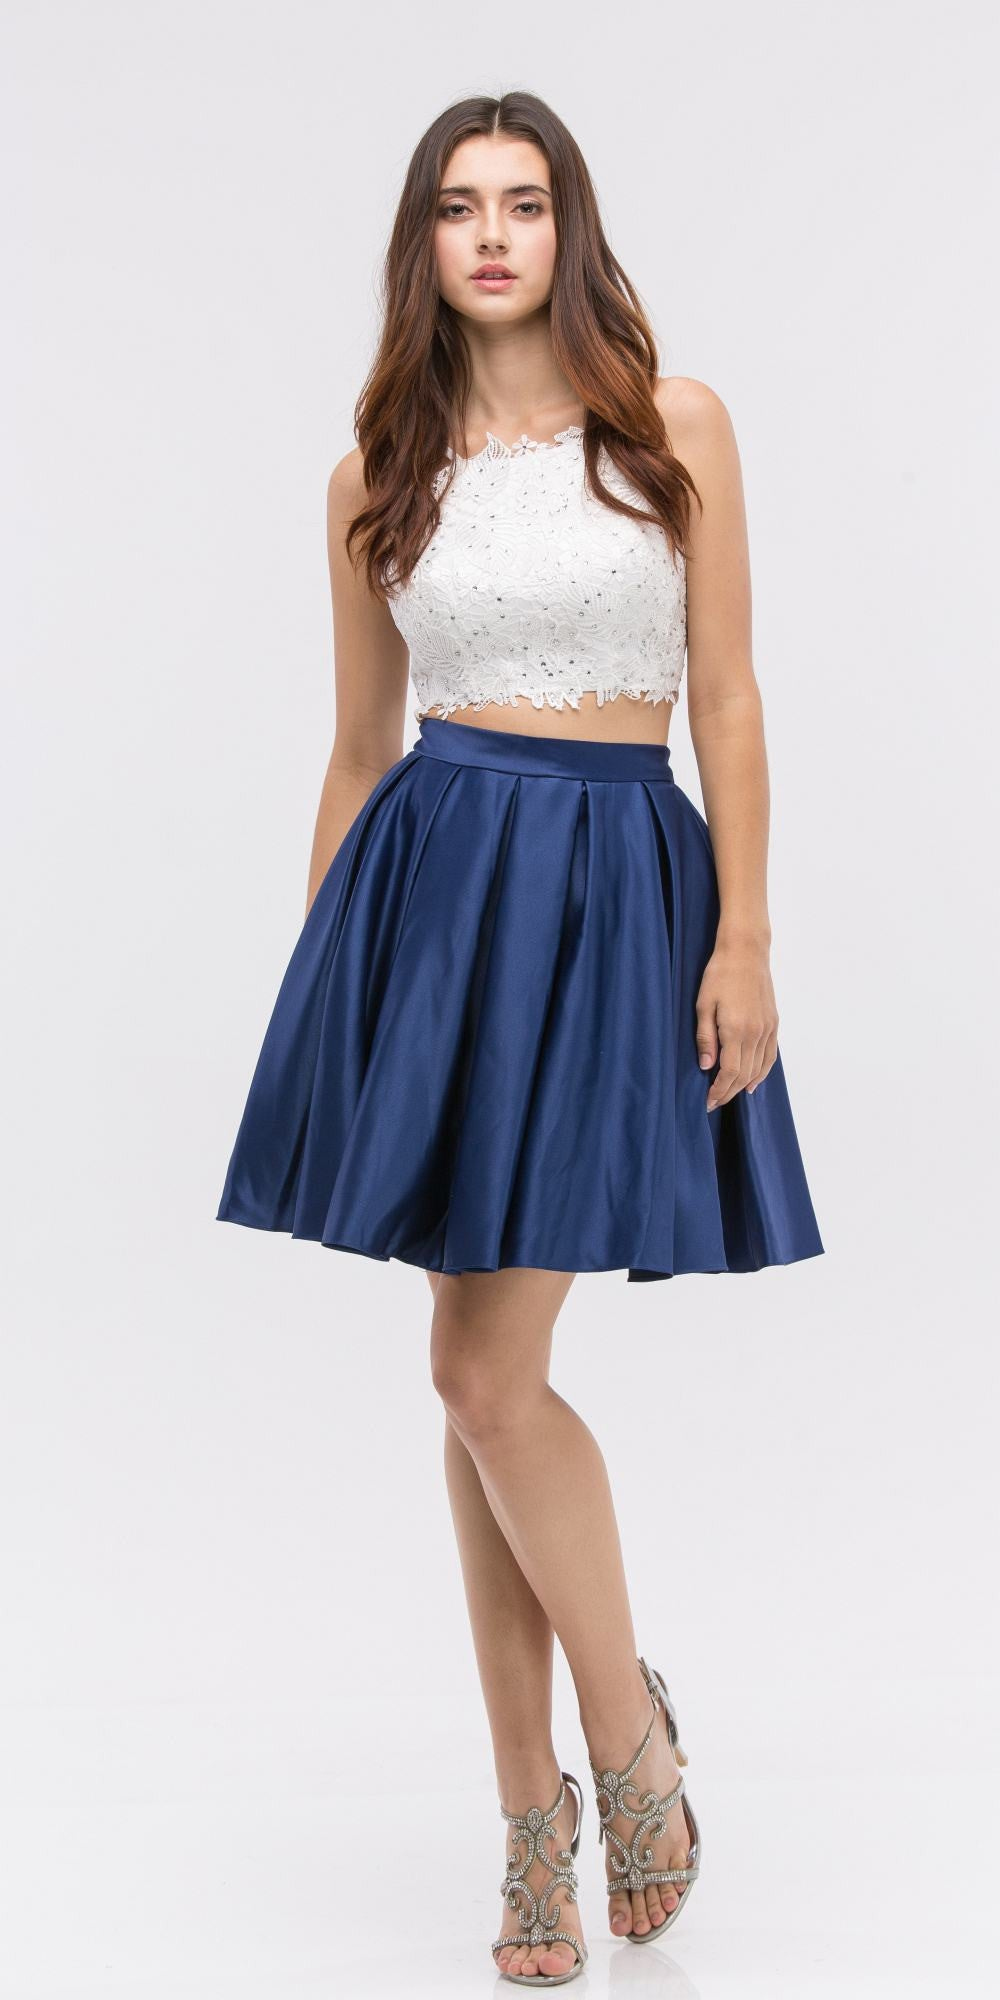 1db5b4bf02 Lace Crop Top Pleated Skirt Navy White Two-Piece Homecoming Dress ...